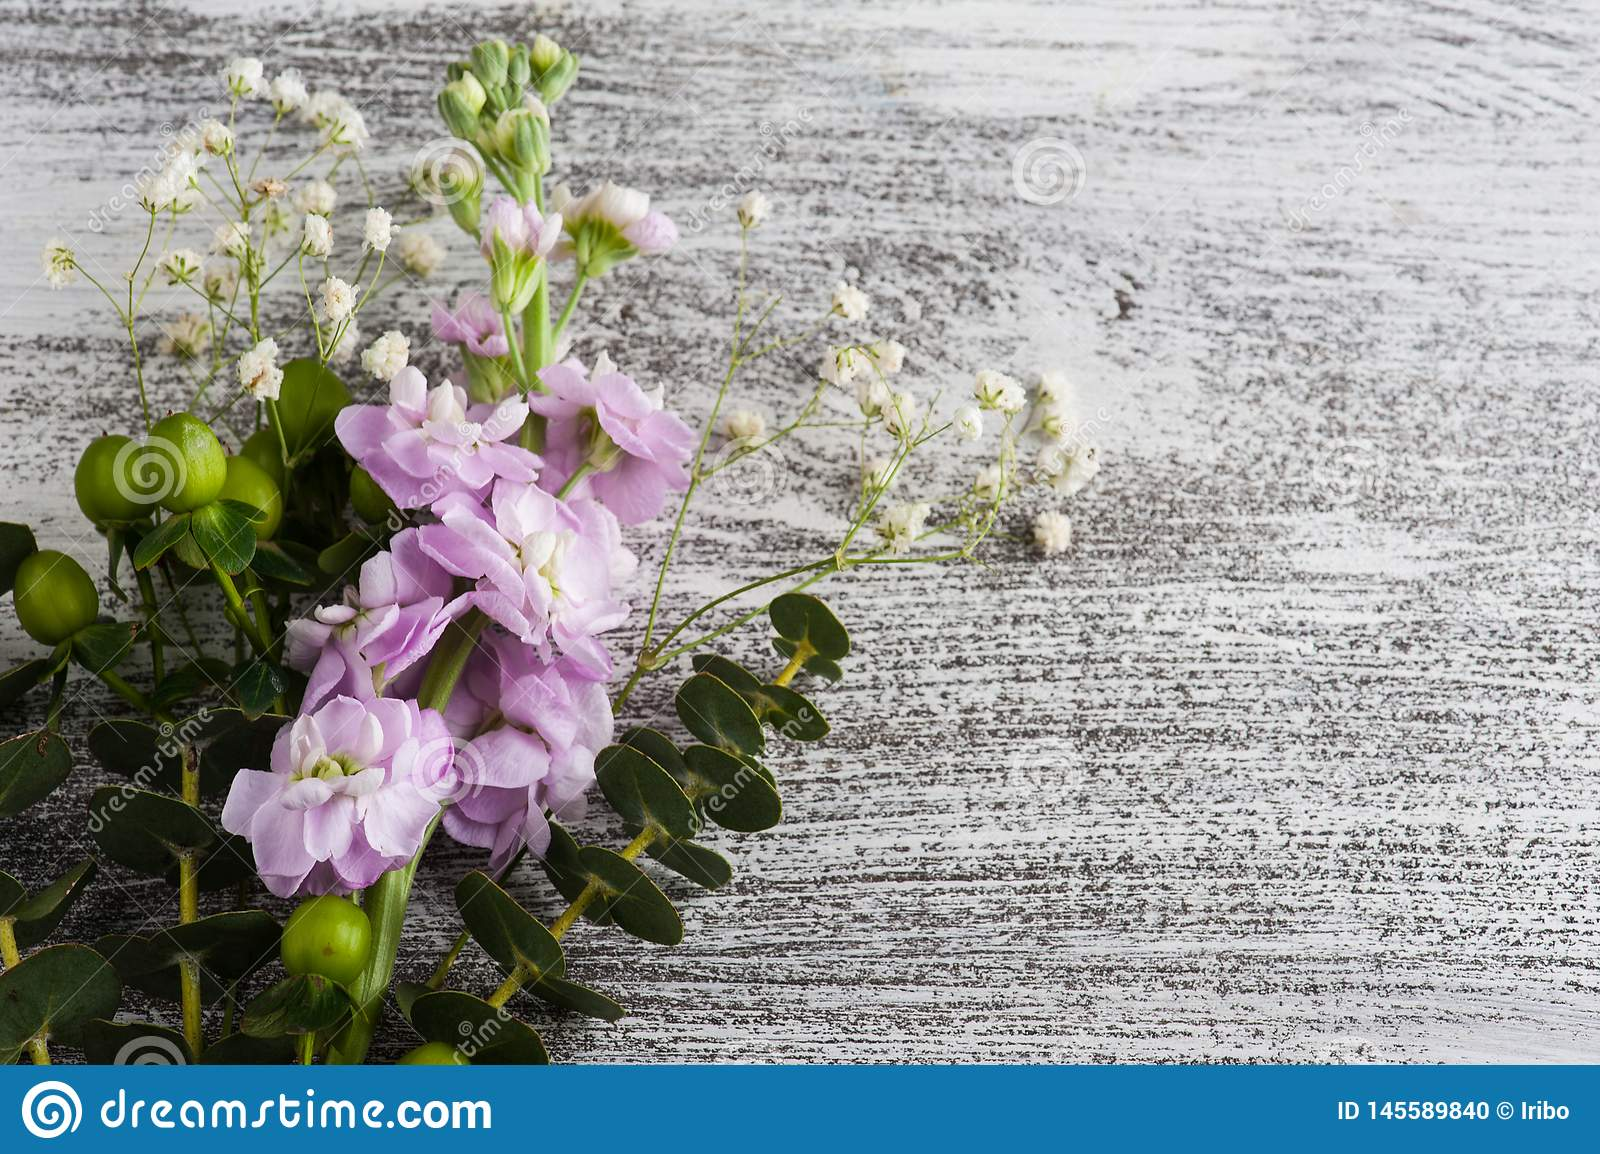 Flowers on rustic wooden background